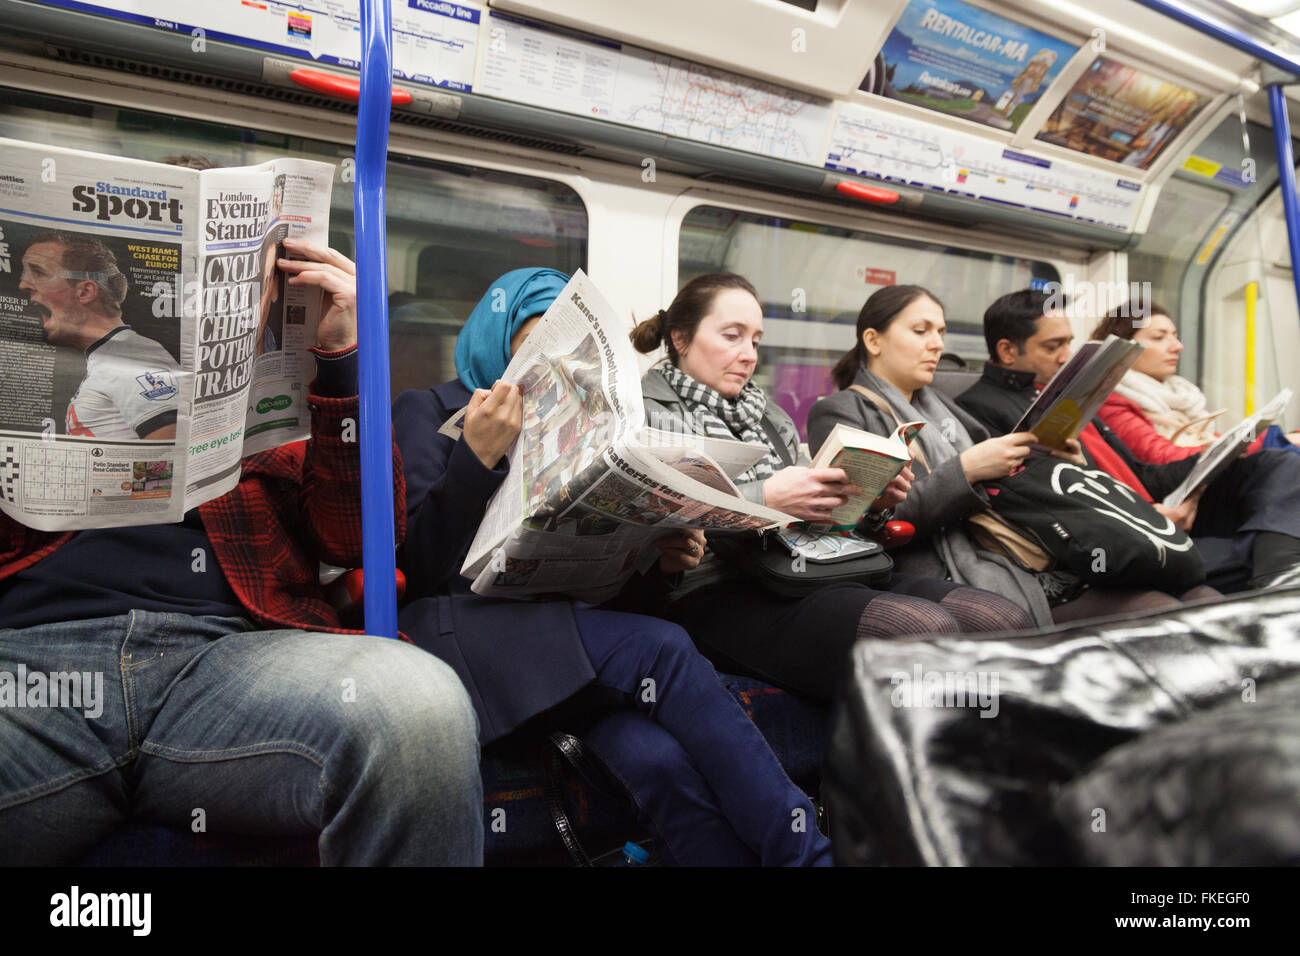 Passengers reading books and newspapers in a London underground train carriage, London UK - Stock Image